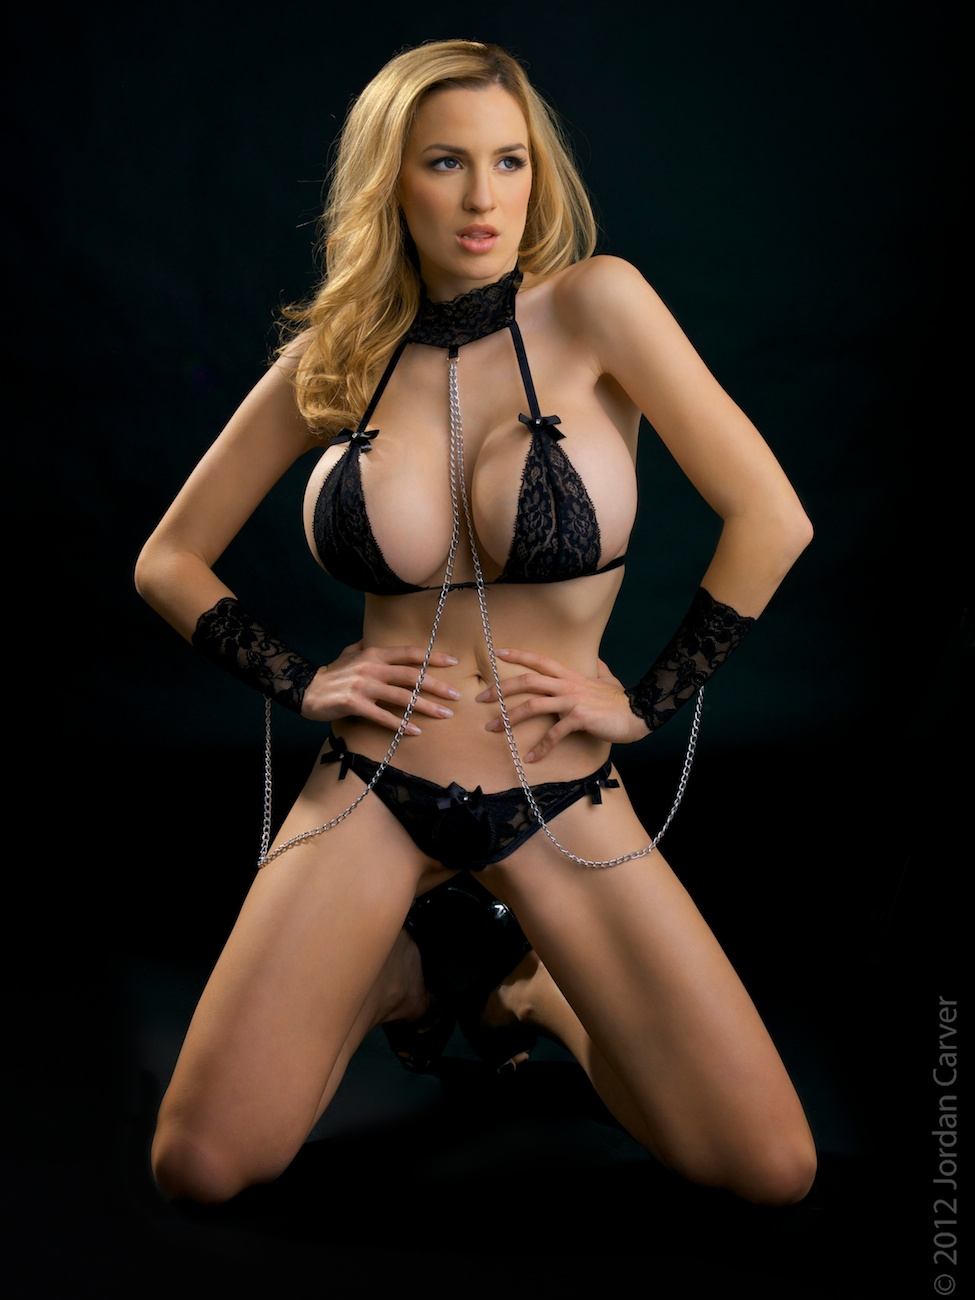 Digitalminx.com - Models - Jordan Carver - Page 3